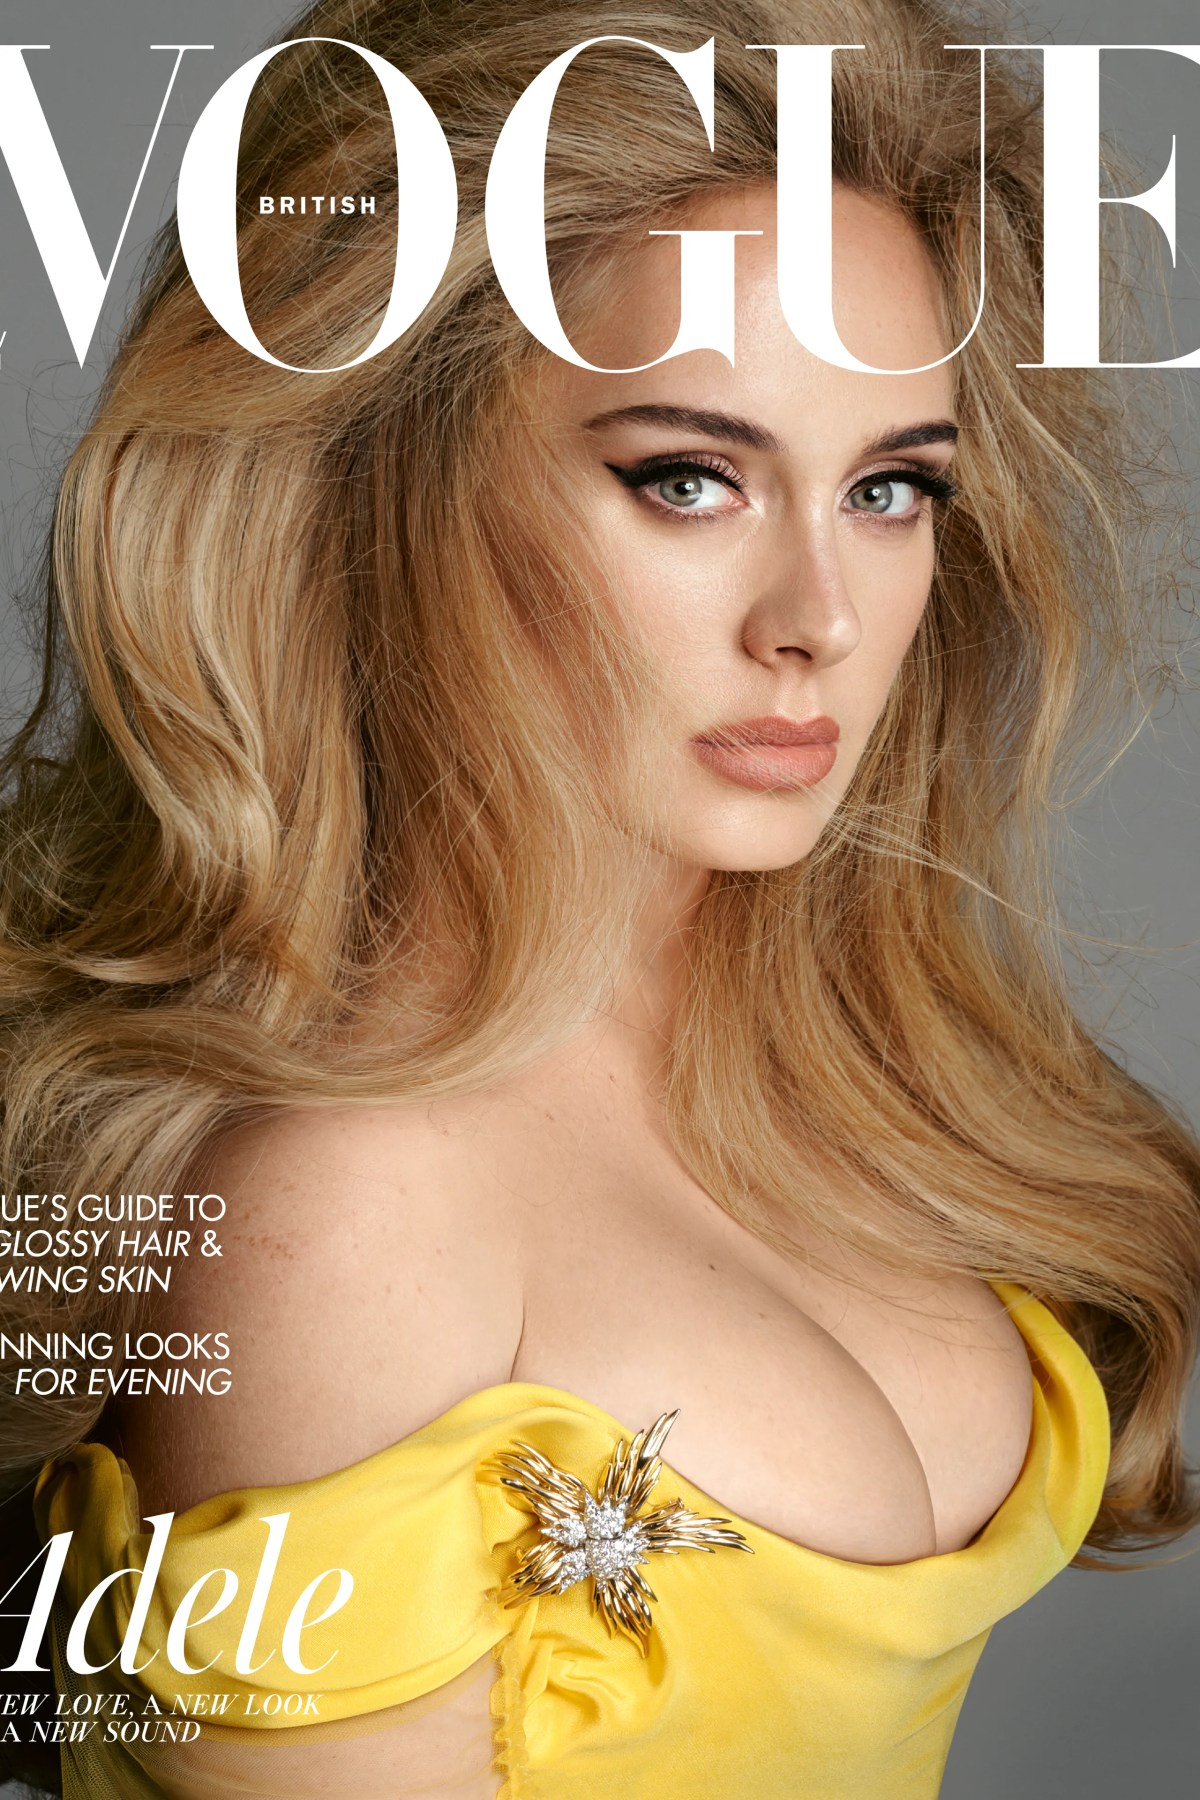 Adele Graces Two Issues Of Vogue Magazine Ahead Of New Music Release